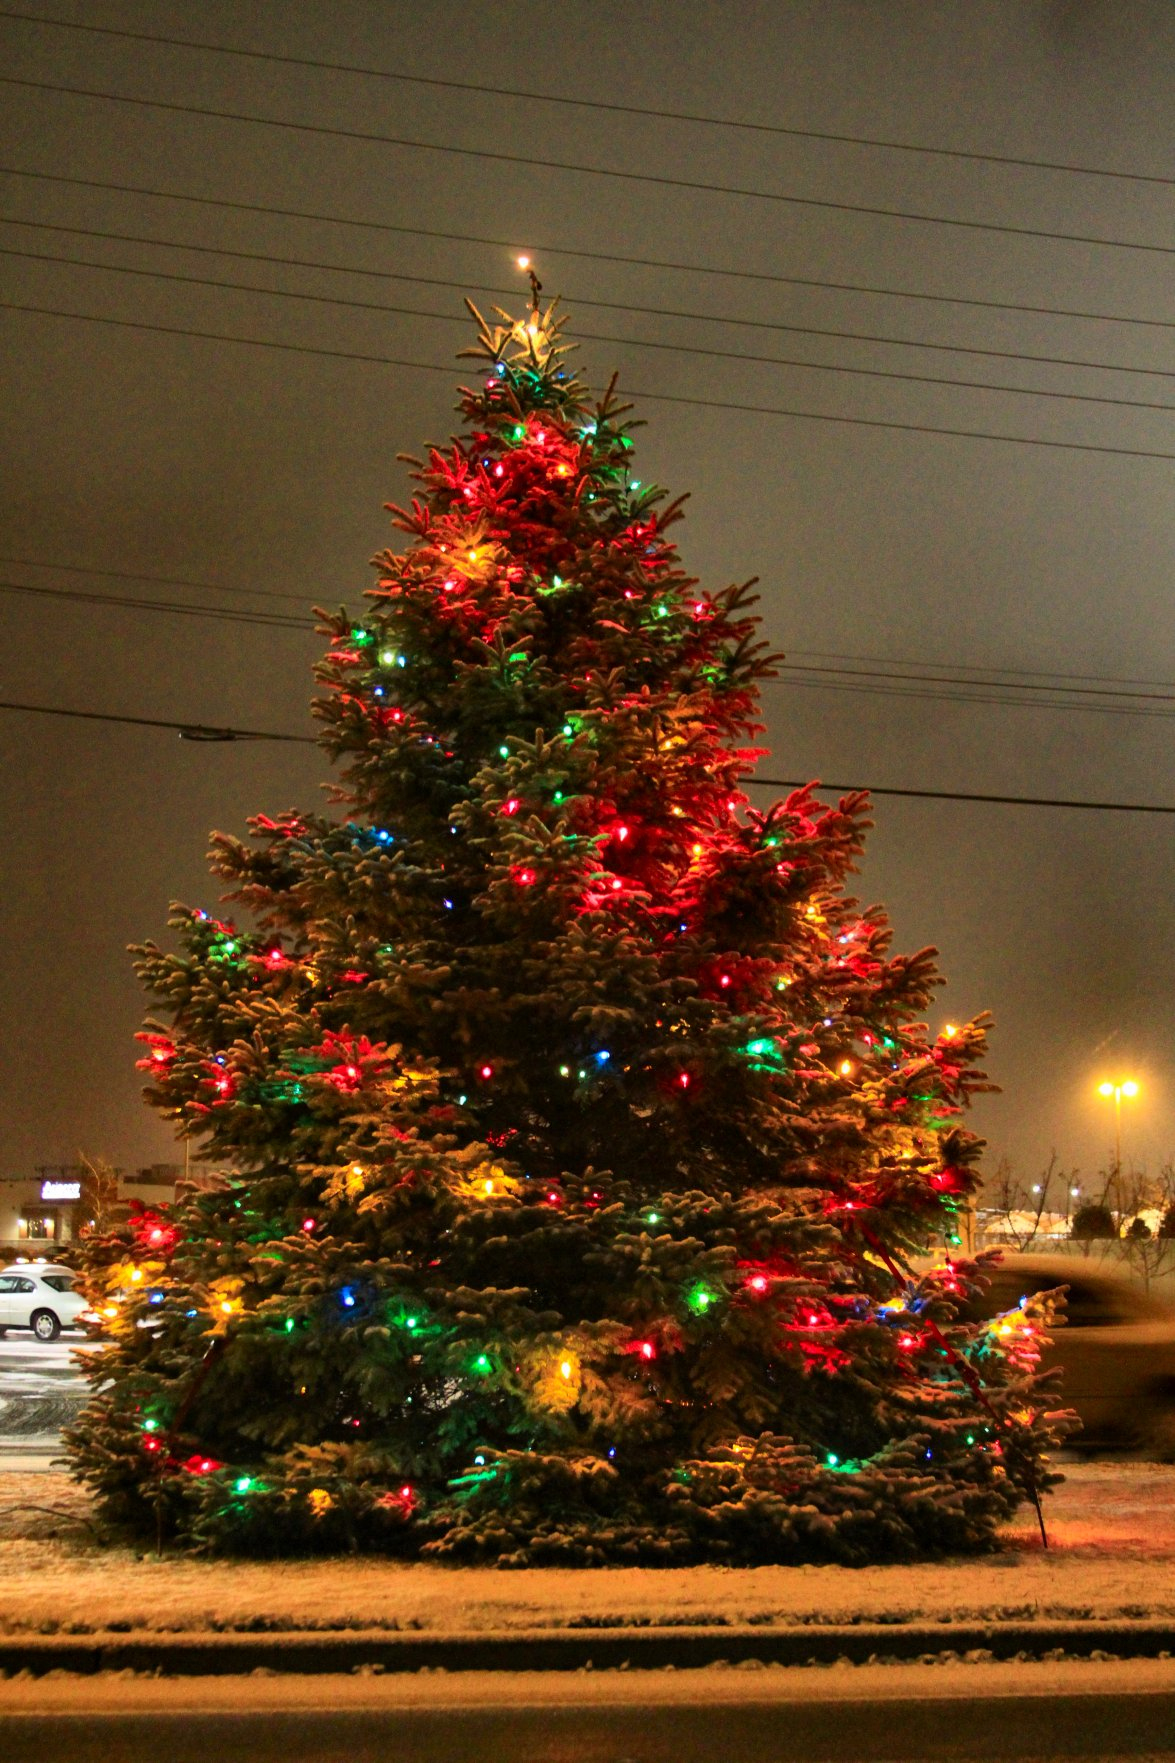 christmas tree in west allis wi 2009 soul ampcom - Christmas Tree Night Light